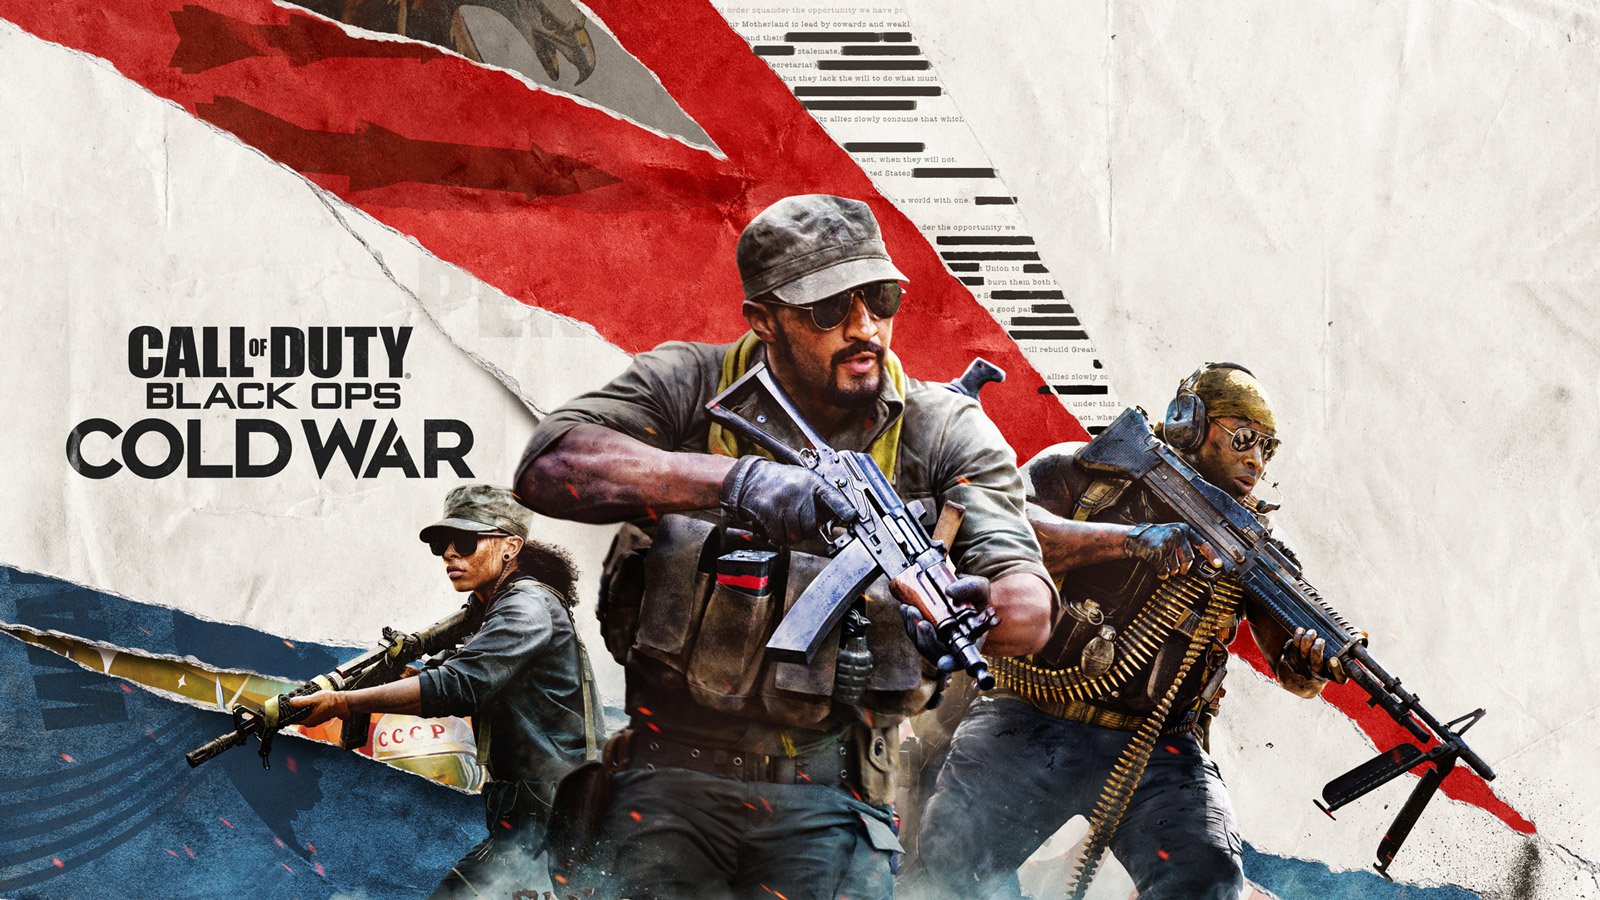 Call of Duty: Black Ops Cold War Wallpaper in 1600x900